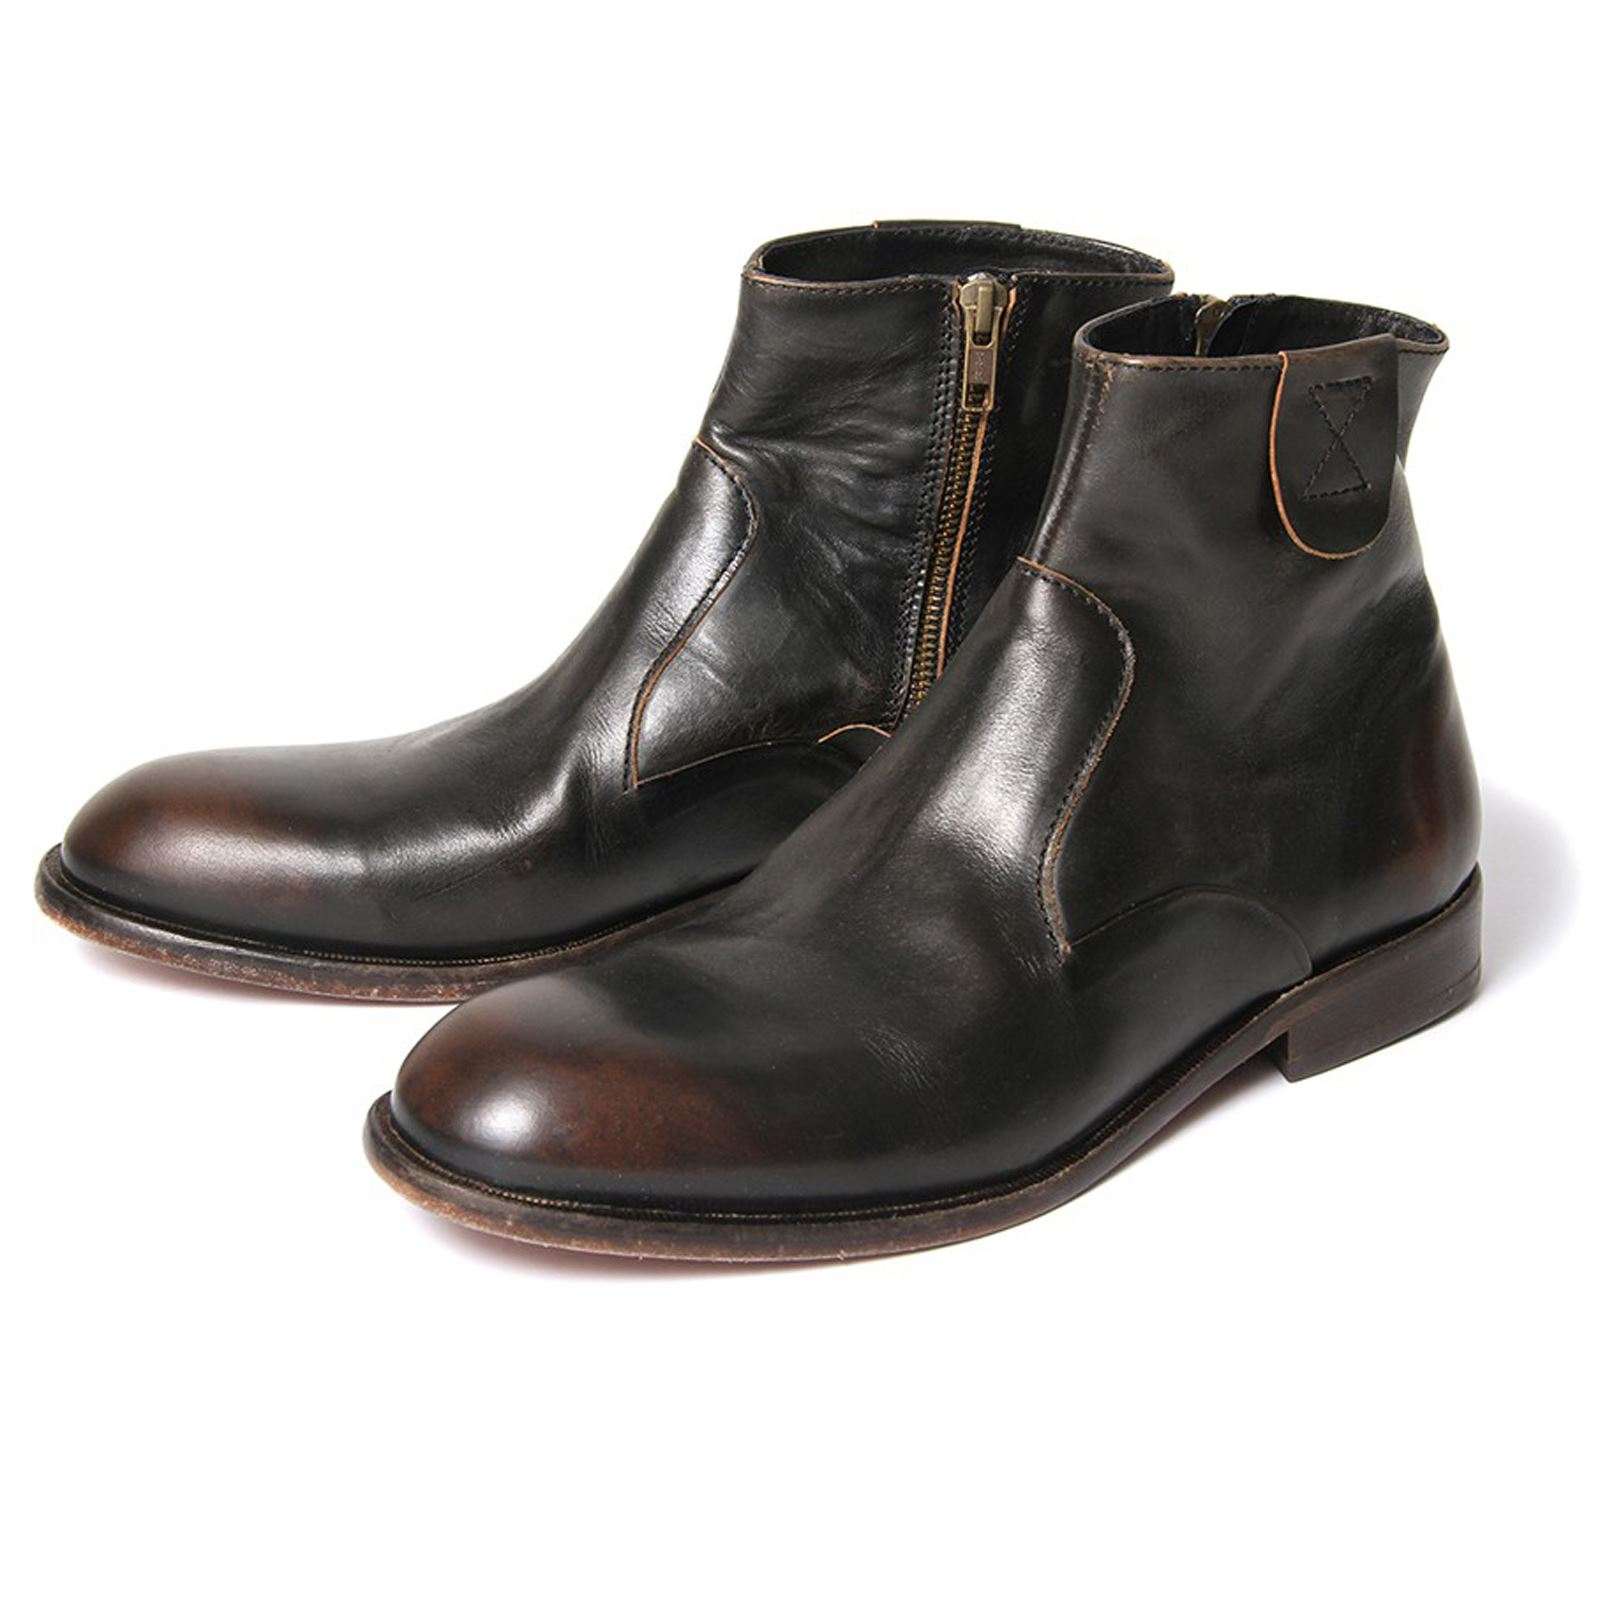 Mens Leather Ankle Boots ijkF1FNW